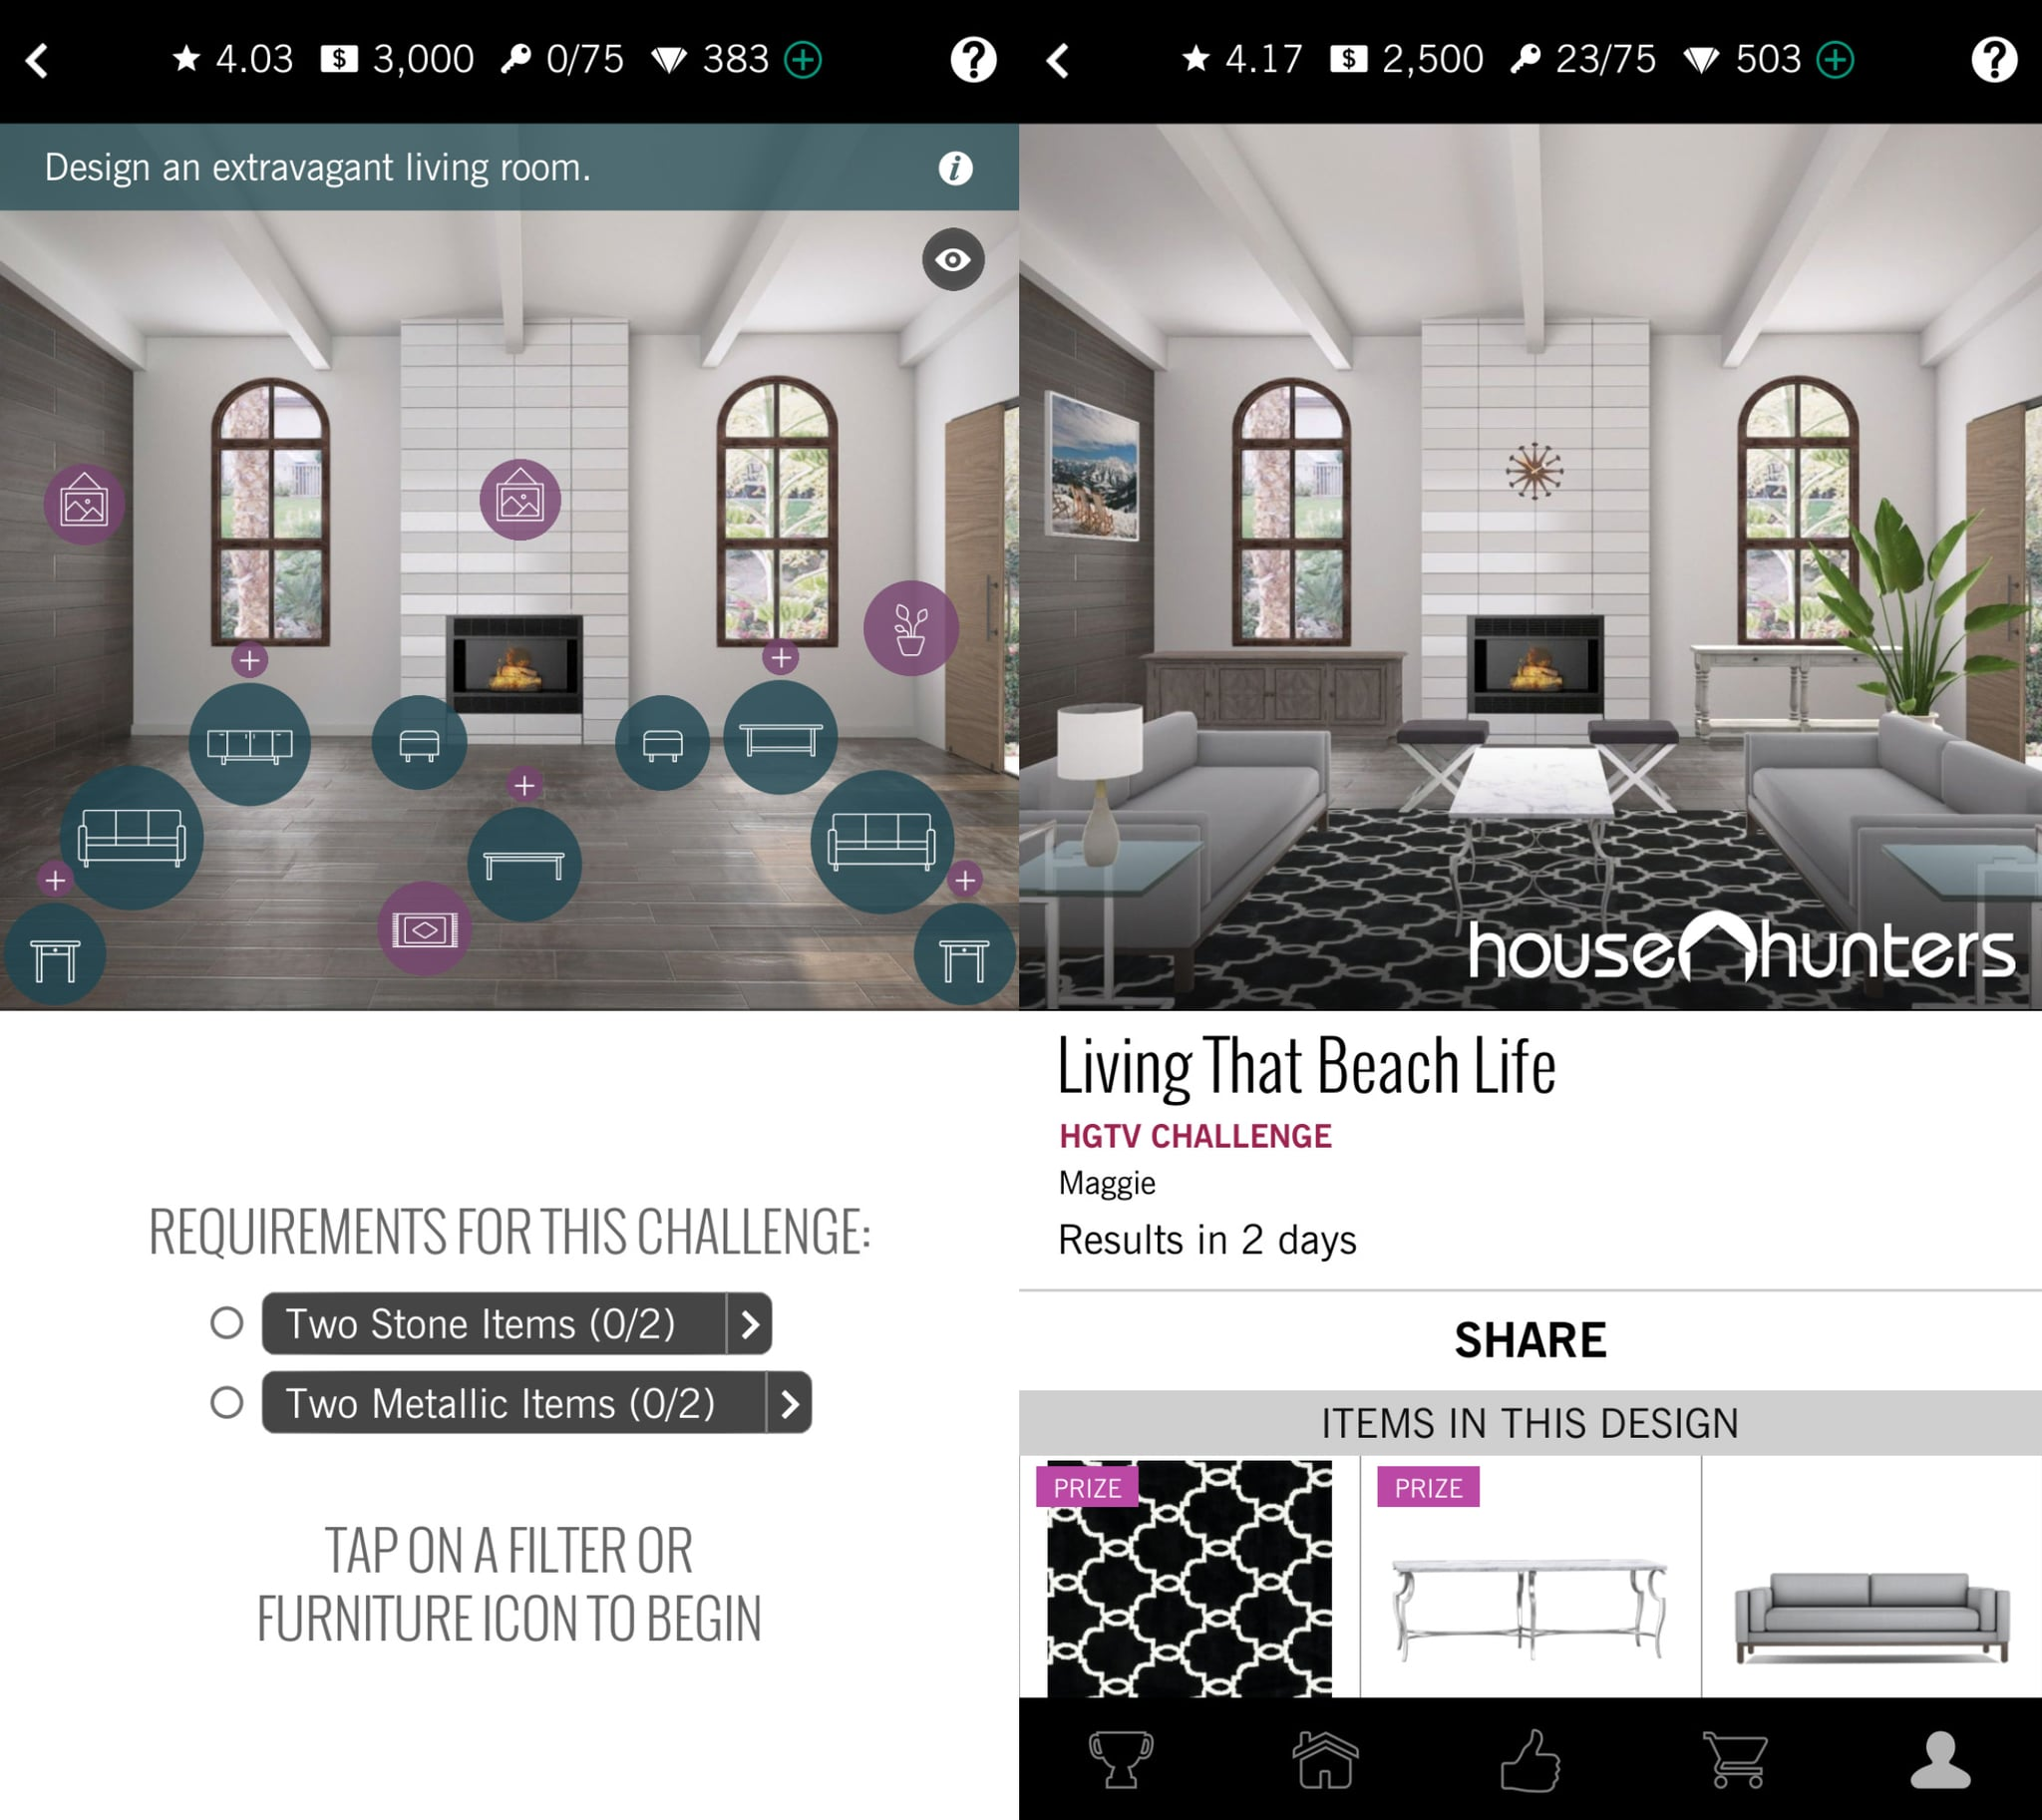 What Is The Design Home App?